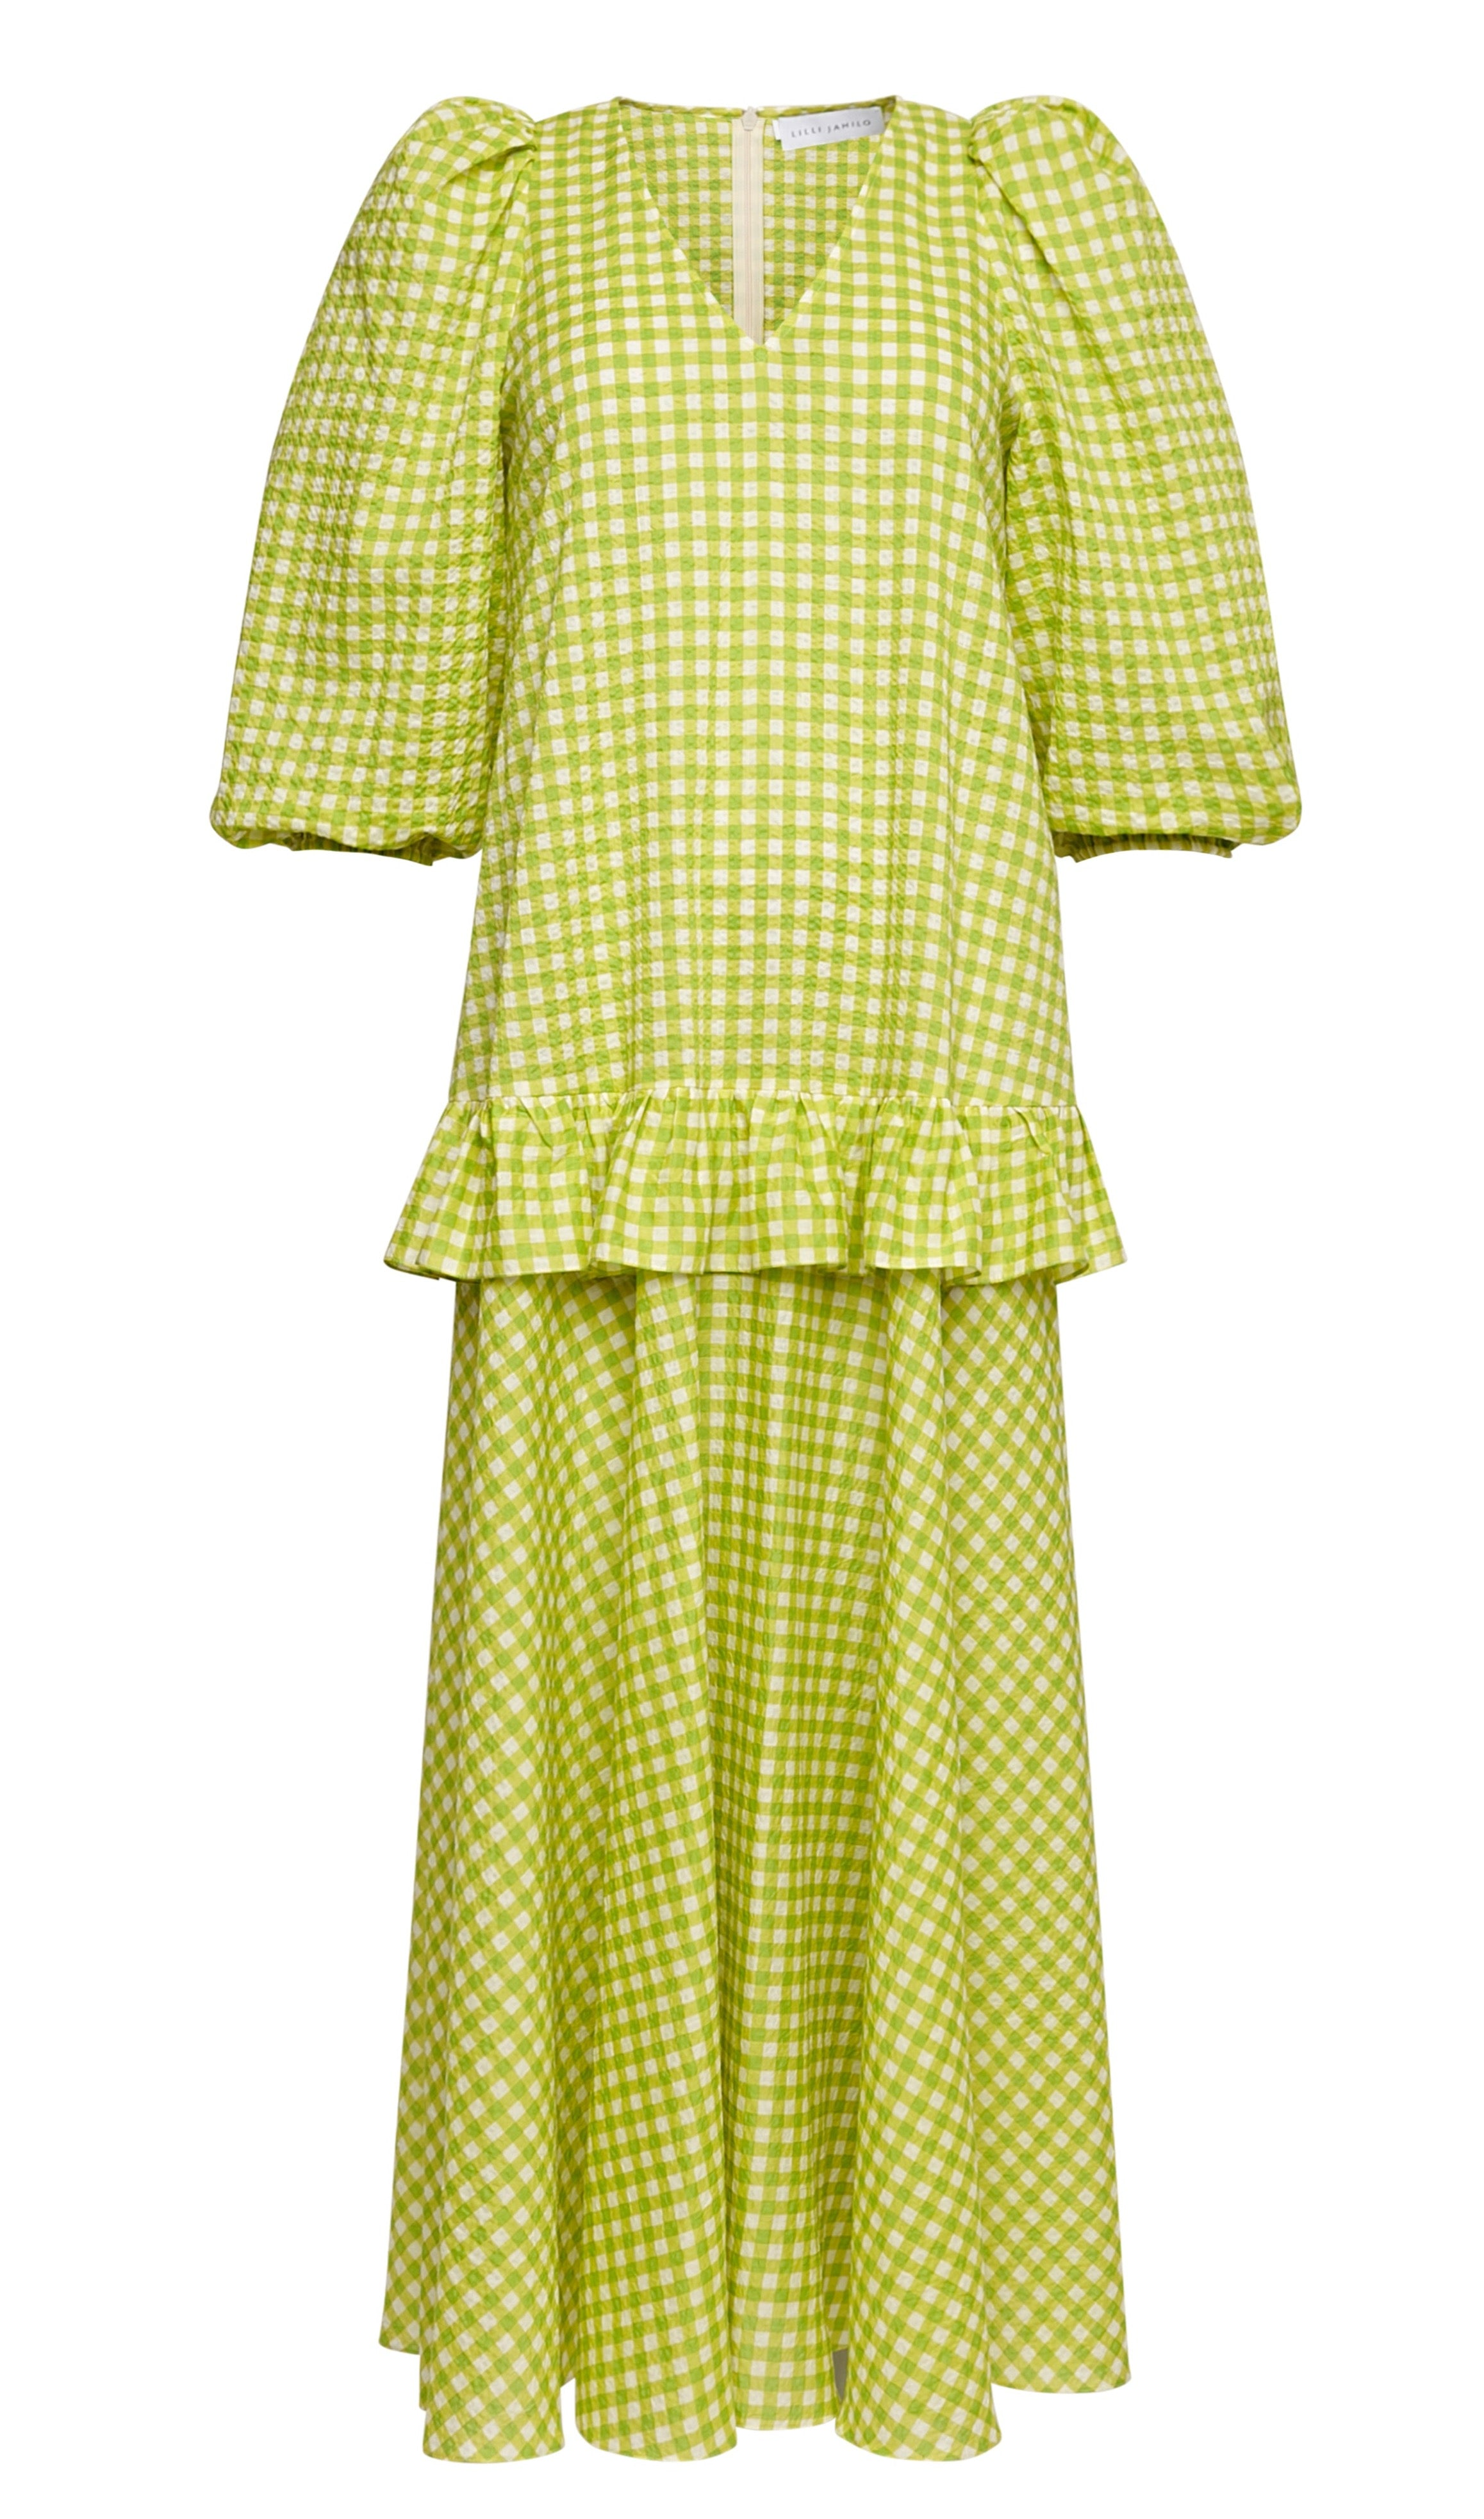 Dana Cotton Seersucker Dress with Sleeves